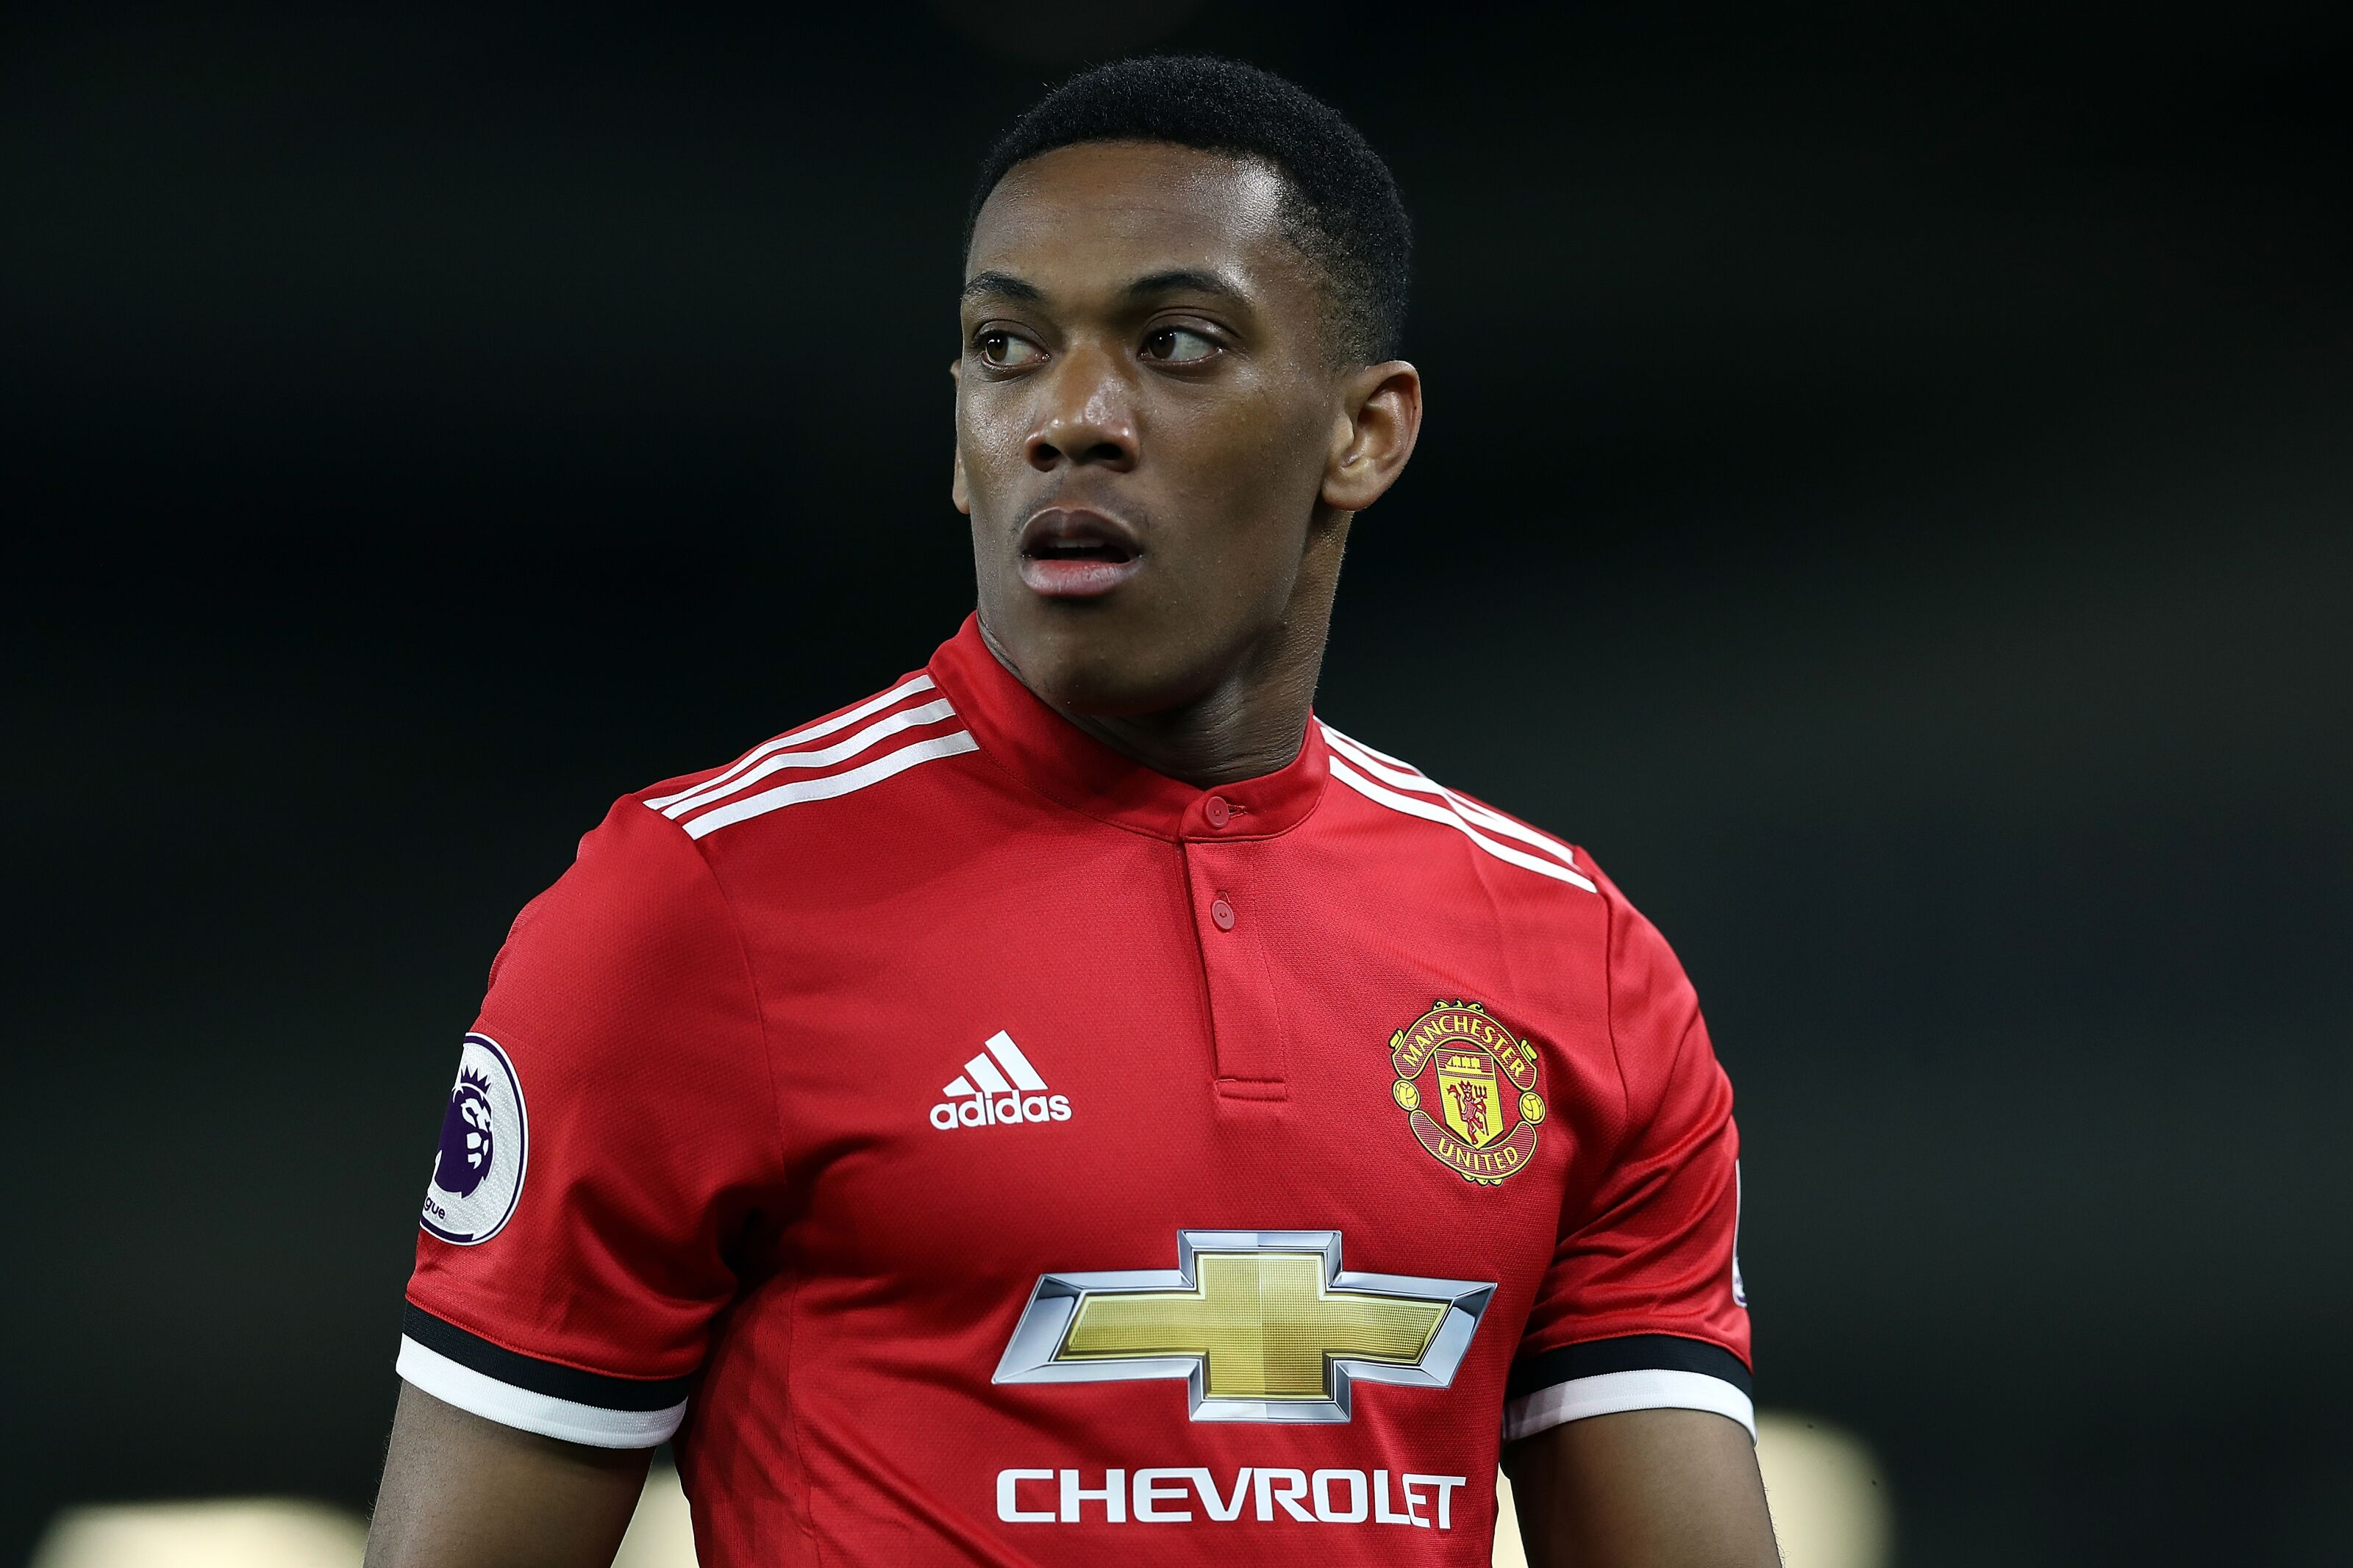 Latest transfer news: Bale and Martial could be Tottenham-bound